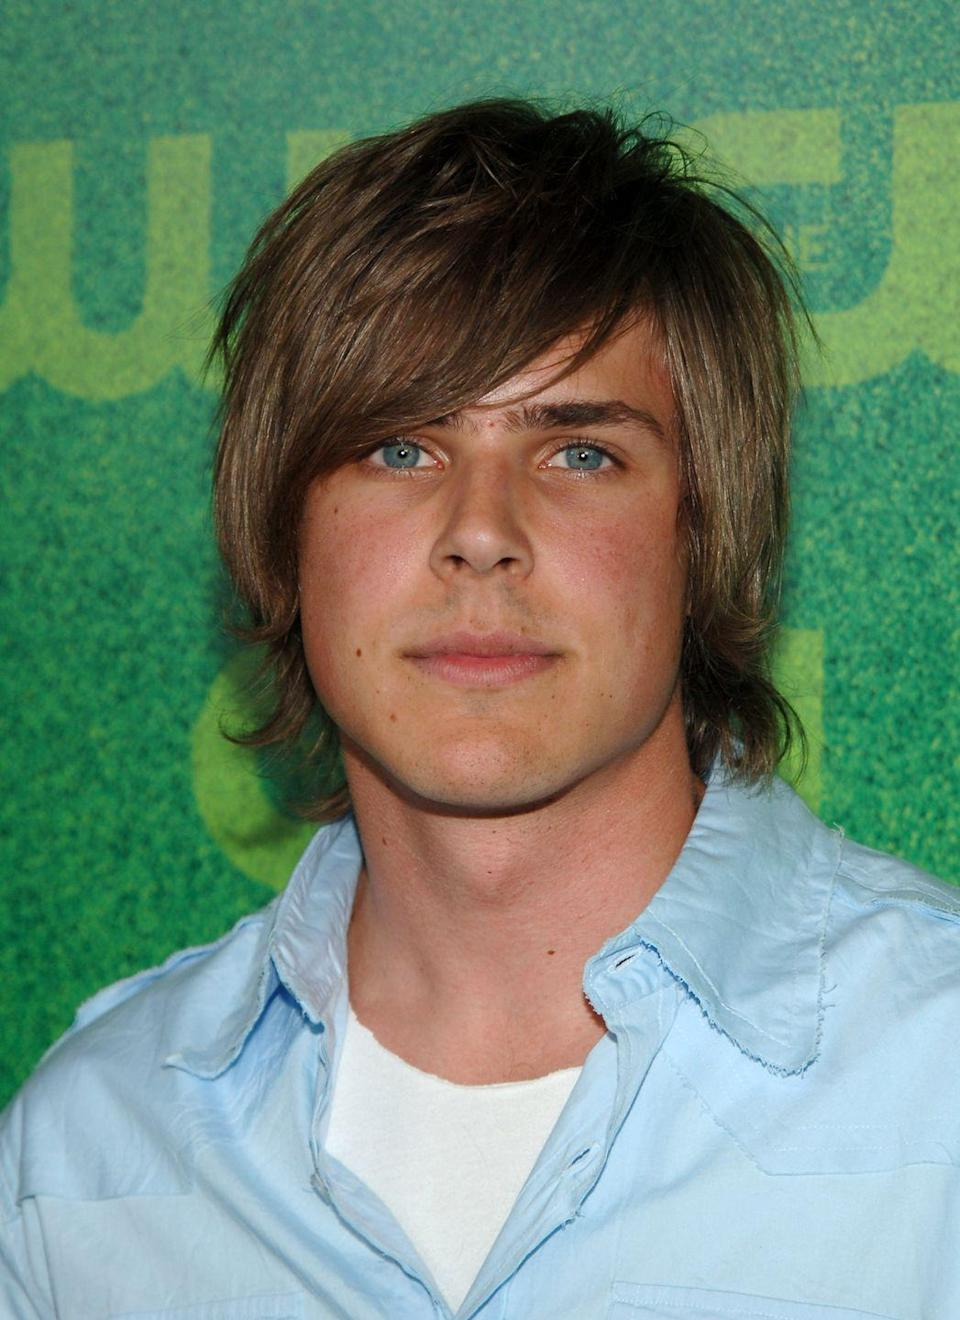 "<p>Chris Lowell's character Stosh ""Piz"" Piznarski was named <a href=""https://www.vanityfair.com/hollywood/2019/06/veronica-mars-oral-history-kristen-bell-rob-thomas"" rel=""nofollow noopener"" target=""_blank"" data-ylk=""slk:after Mark Piznarski"" class=""link rapid-noclick-resp"">after Mark Piznarski</a>, who directed the pilot episode.</p>"